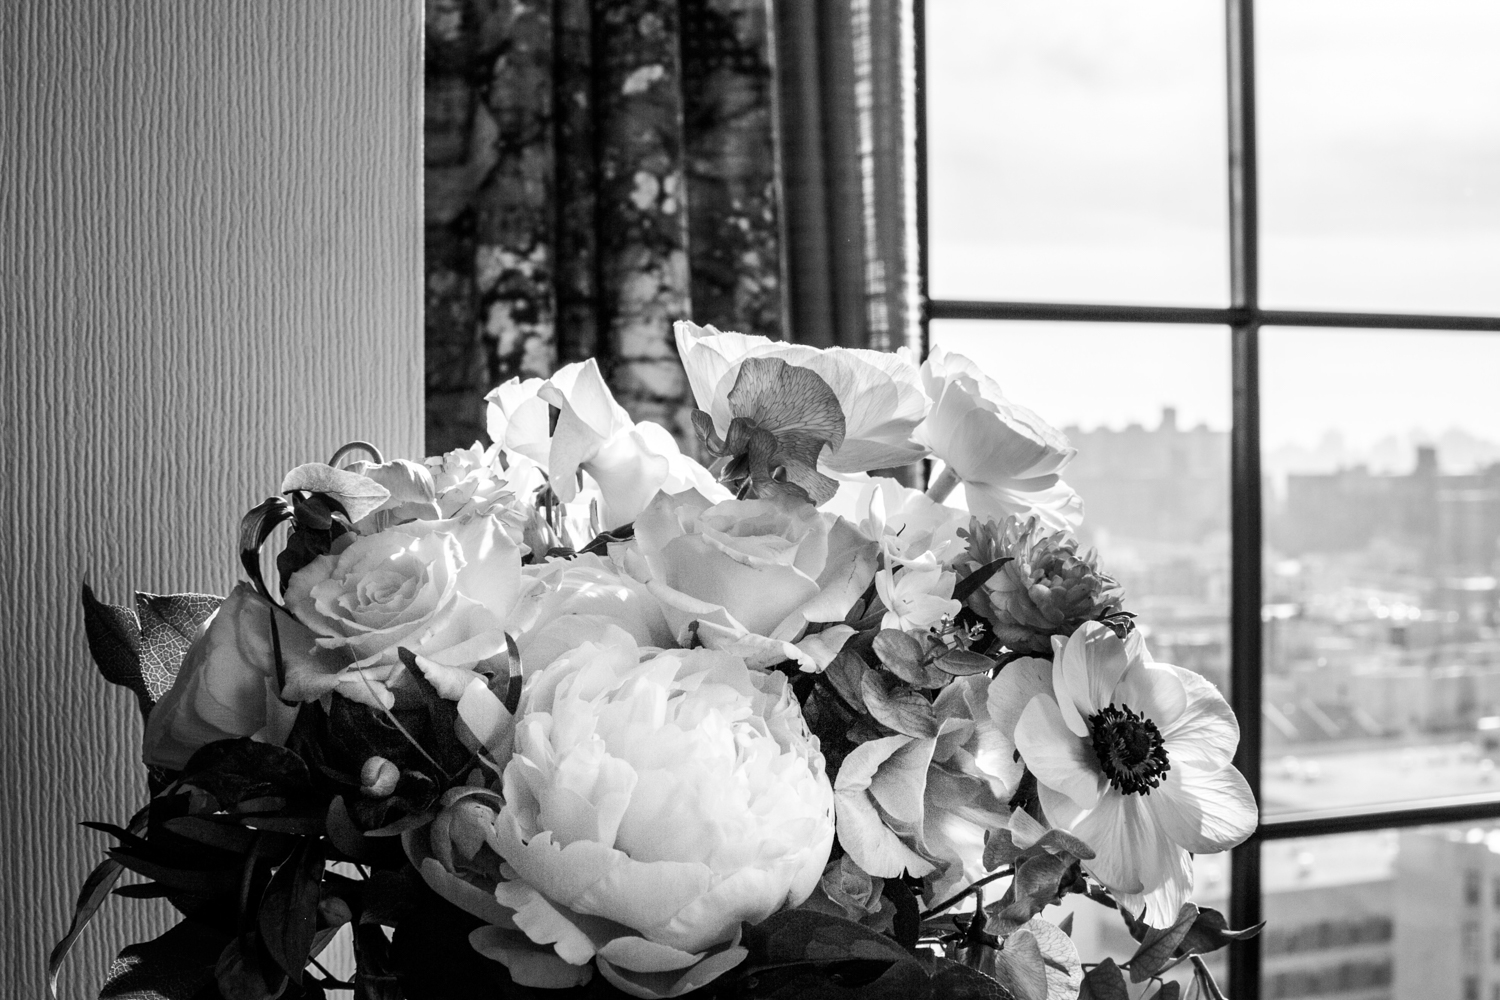 Black and. white portrait of bride's bouquet